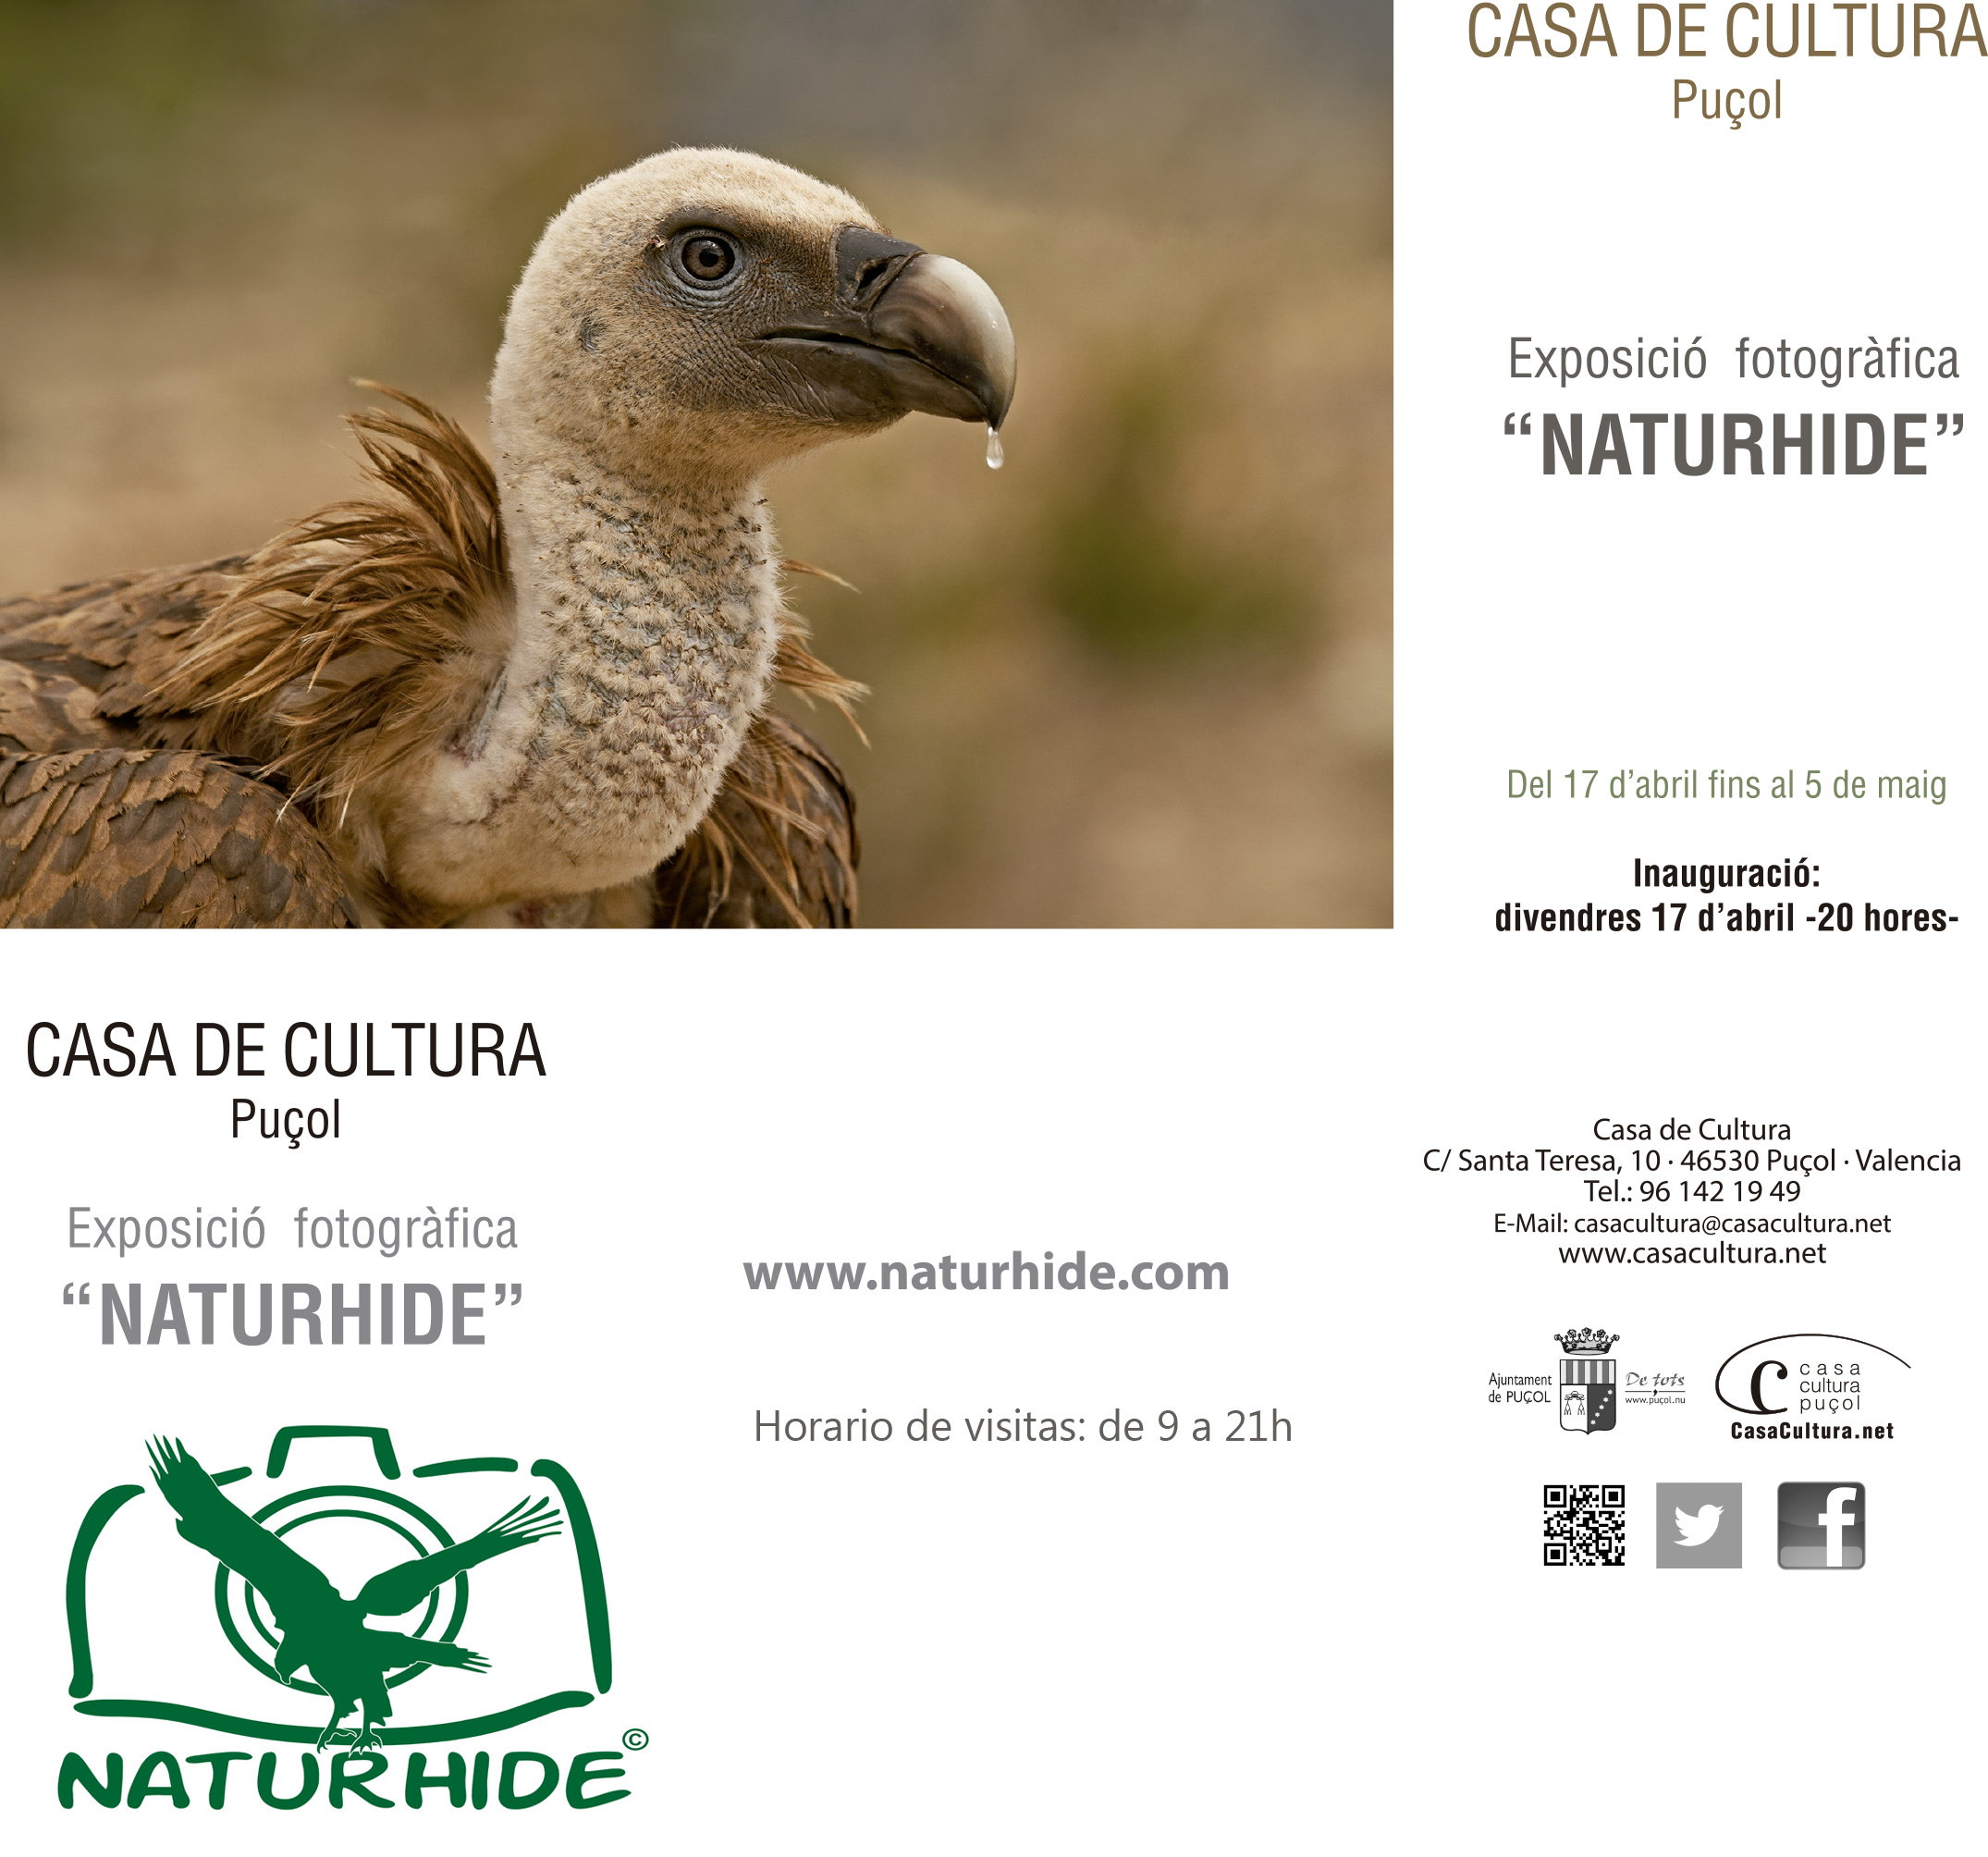 Expo Naturhide 17 Abril al 5 Mayo